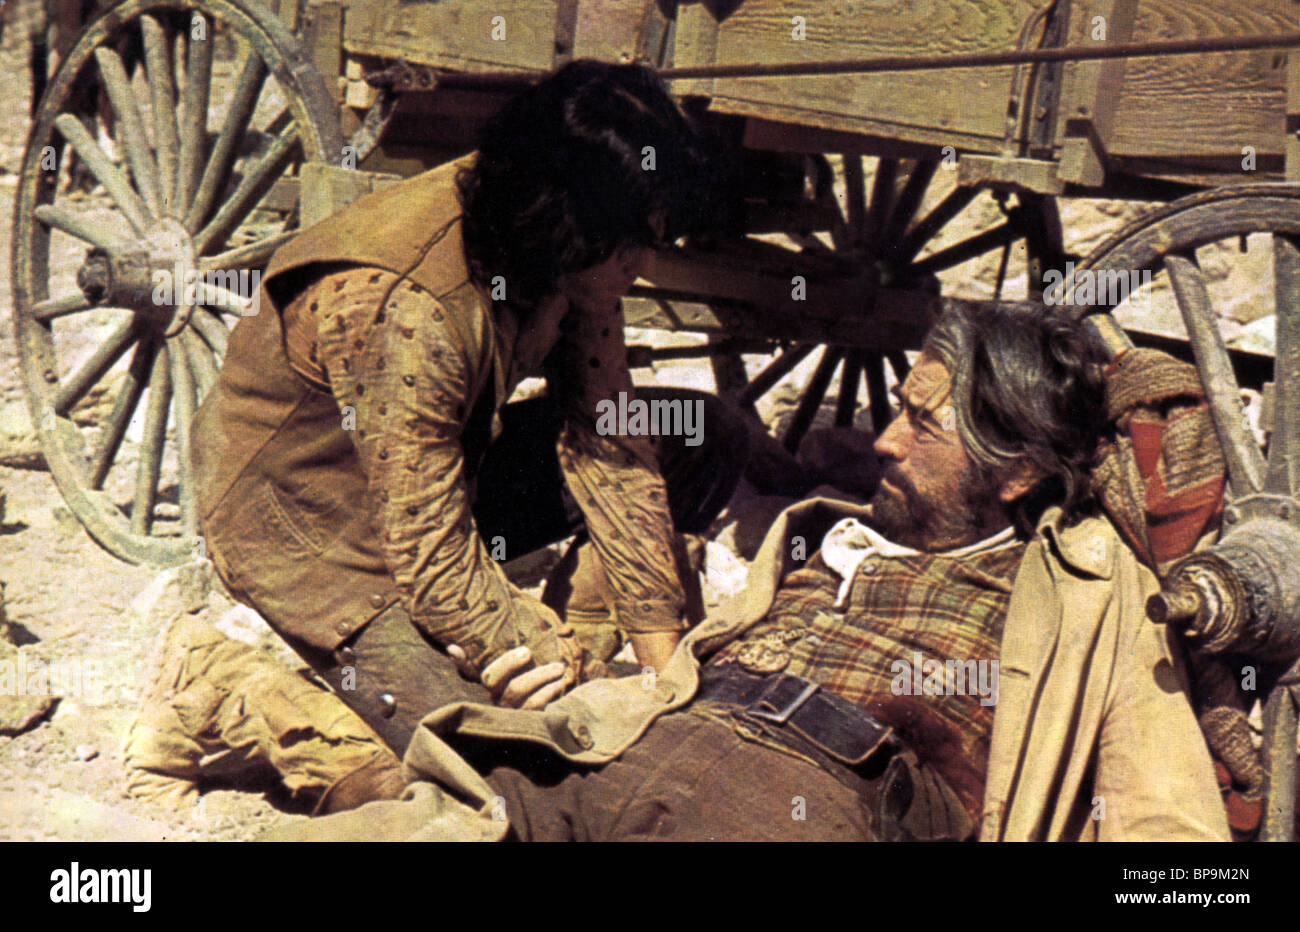 DESI ARNAZ Jr.   Gregory Peck Billy dos sombreros (1974) Imagen De Stock 092be34a161